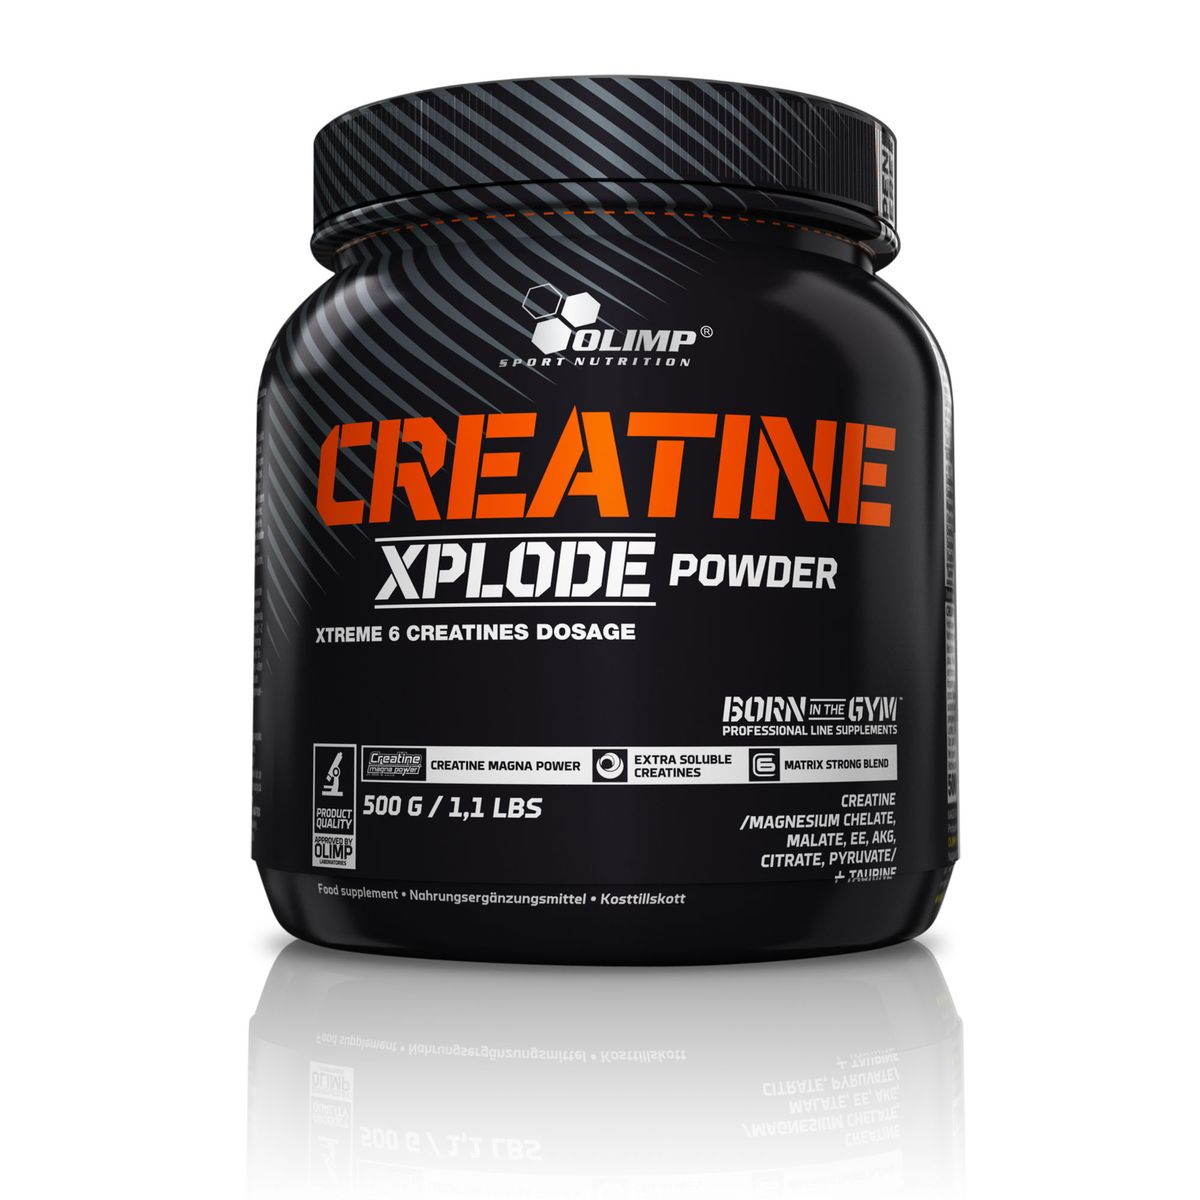 Креатин Olimp Sport Nutrition Creatine Xplode Powder, апельсин, 500 г dymatize nutrition моногидрат креатина dymatize creatine micronized 500гр